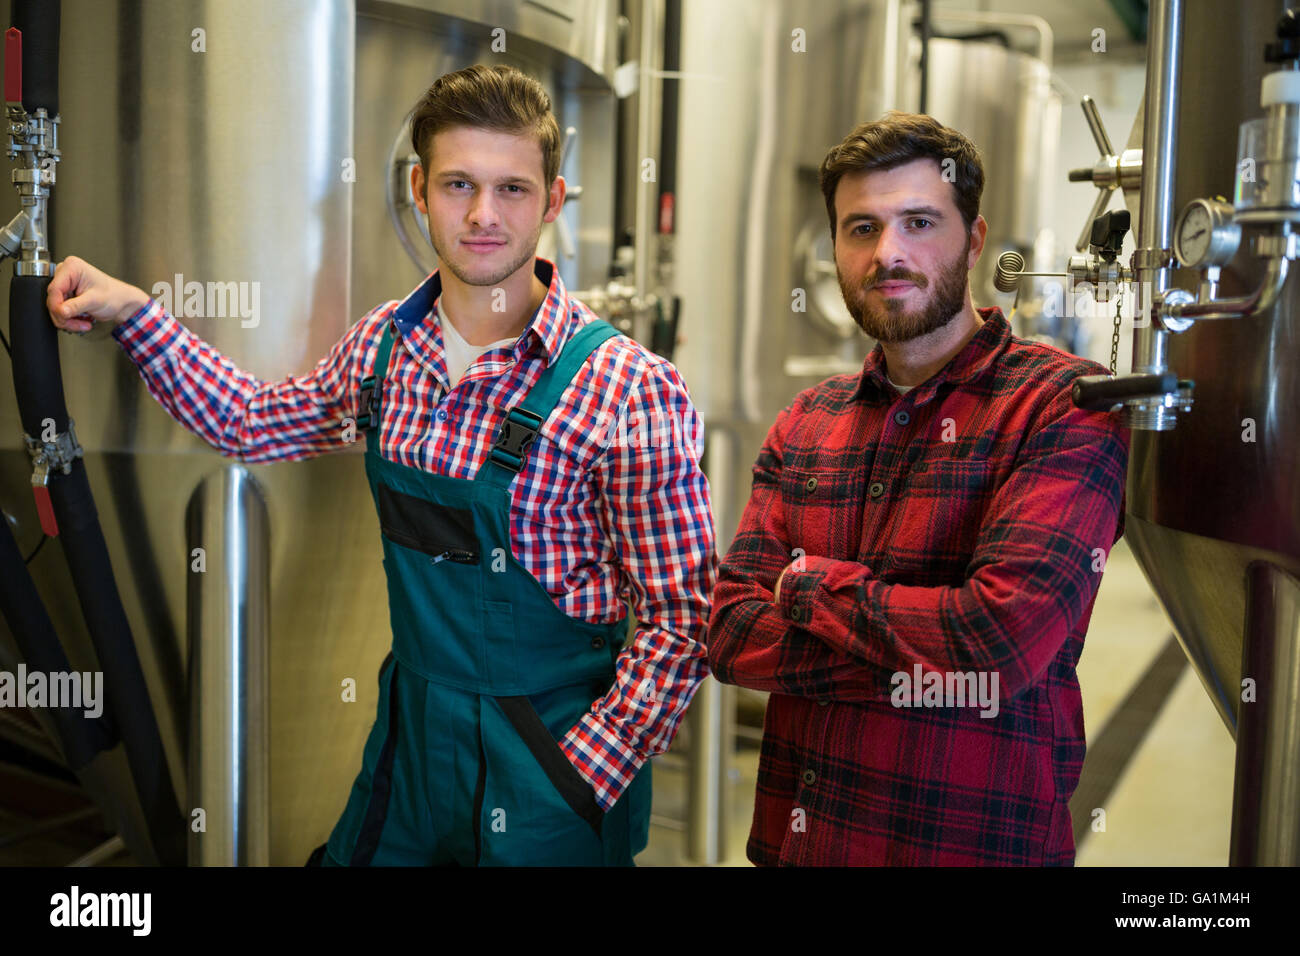 Brewers with arms crossed at brewery - Stock Image